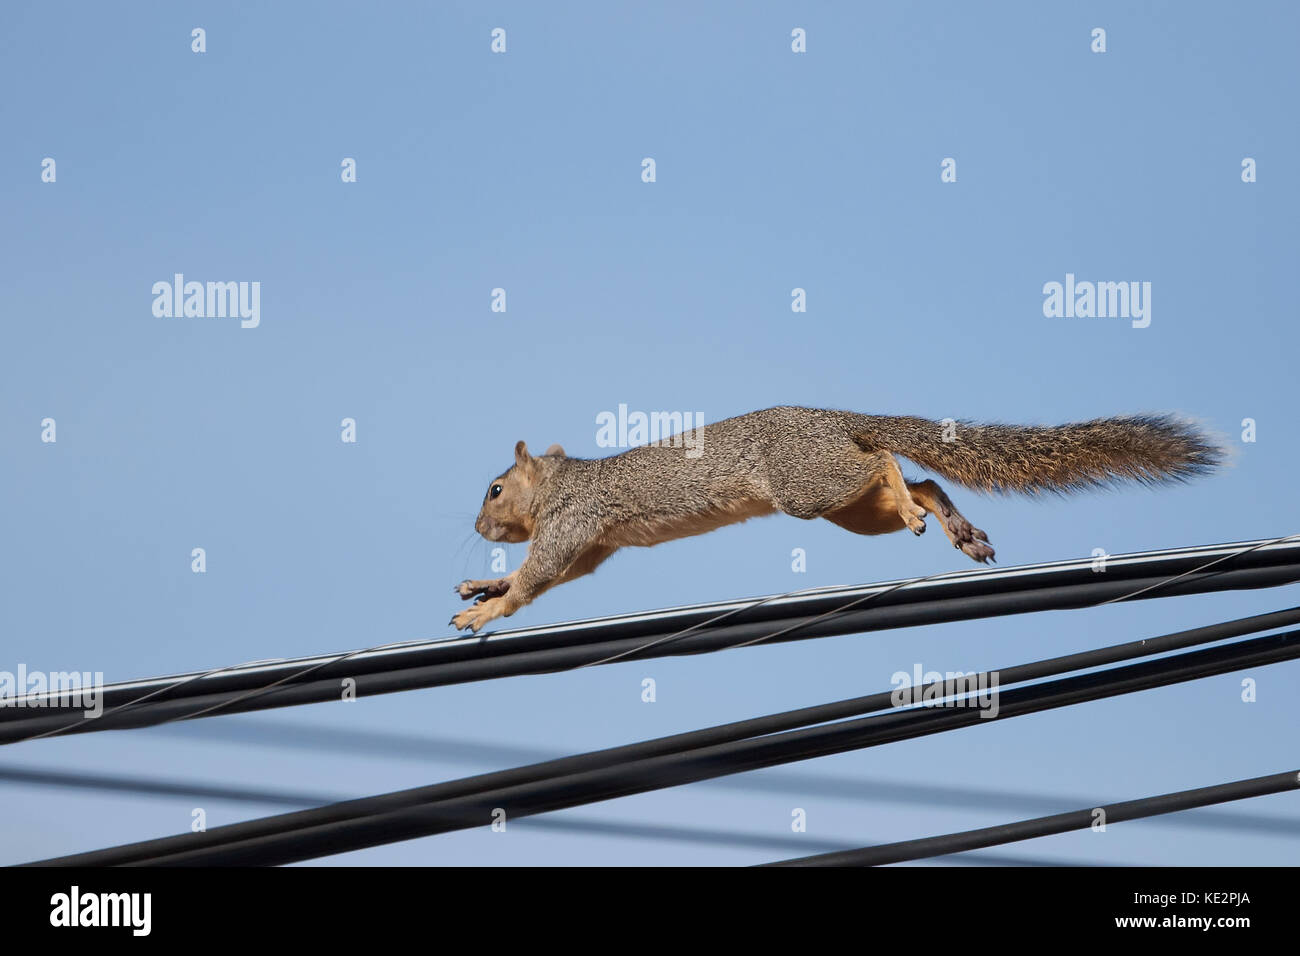 Squirrel On Wire Stock Photos & Squirrel On Wire Stock Images - Alamy